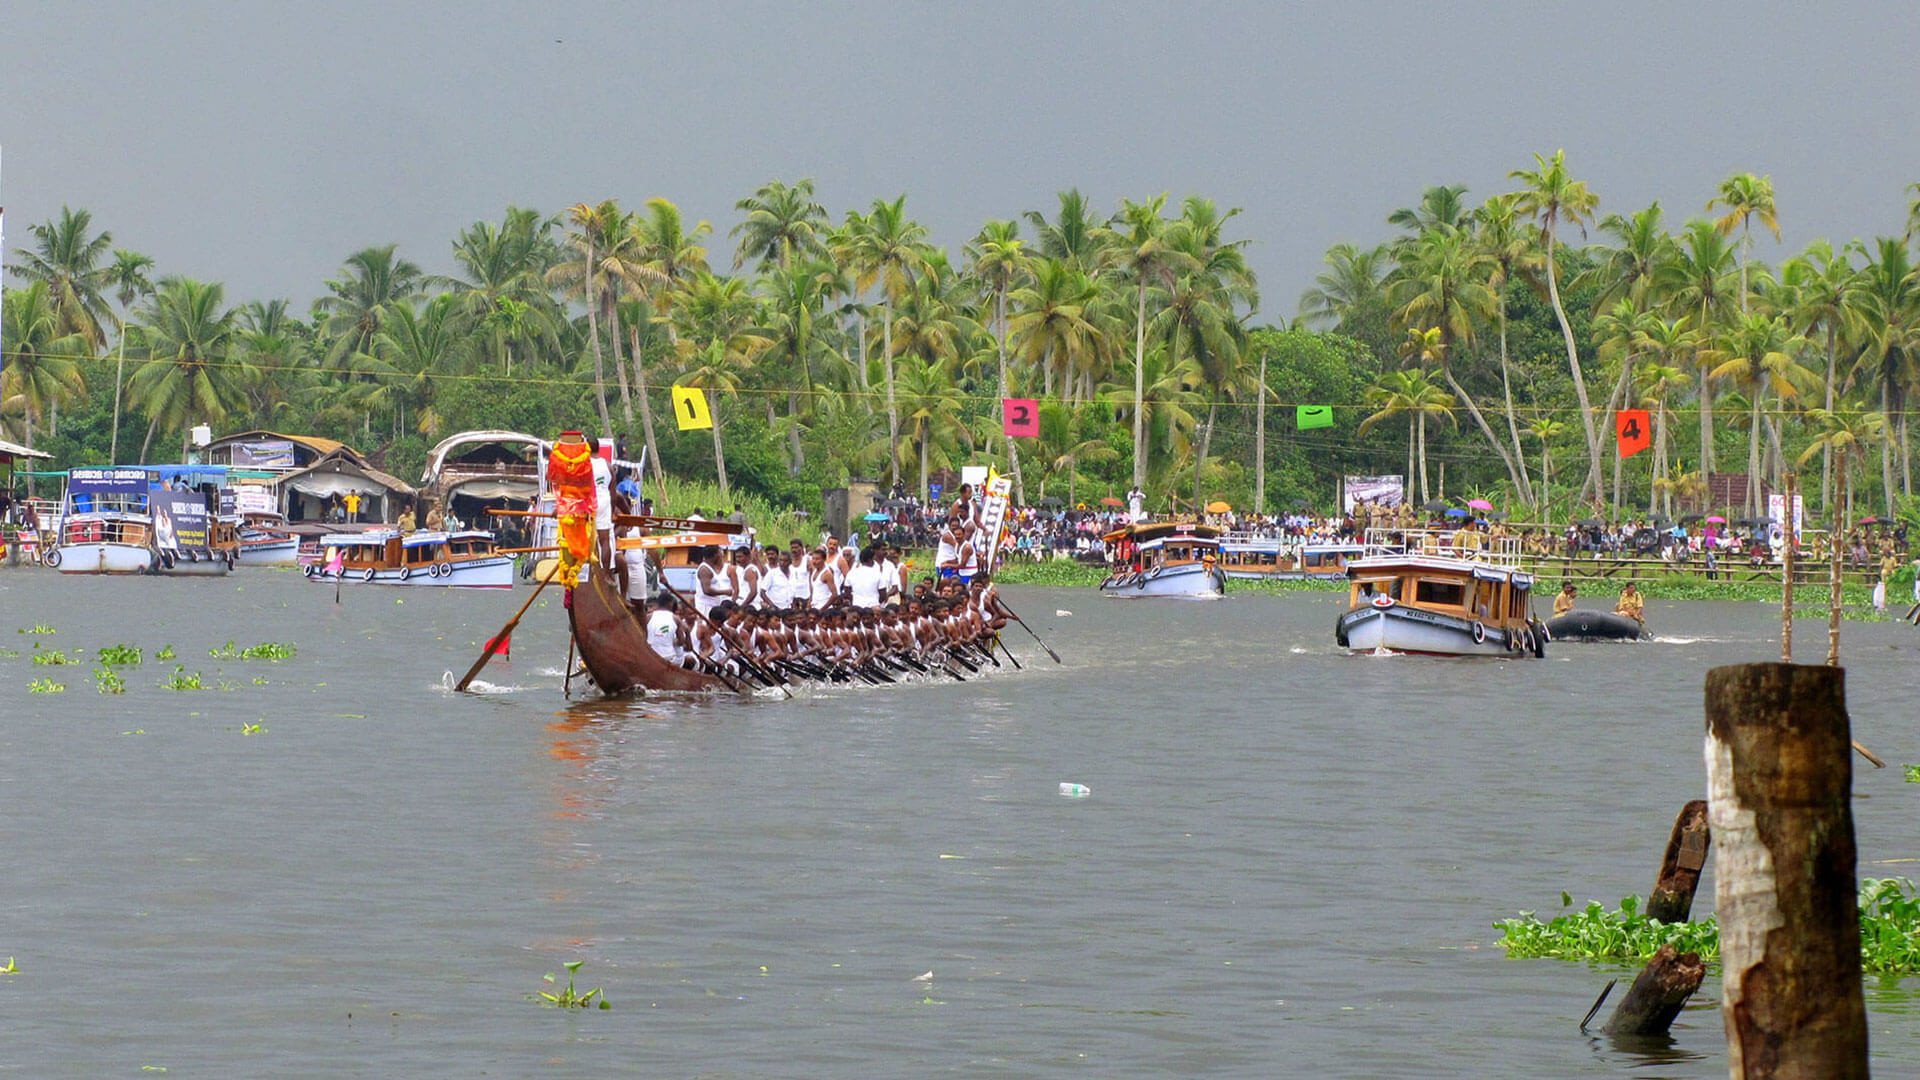 Champakulam_Boat_festival_Attractions